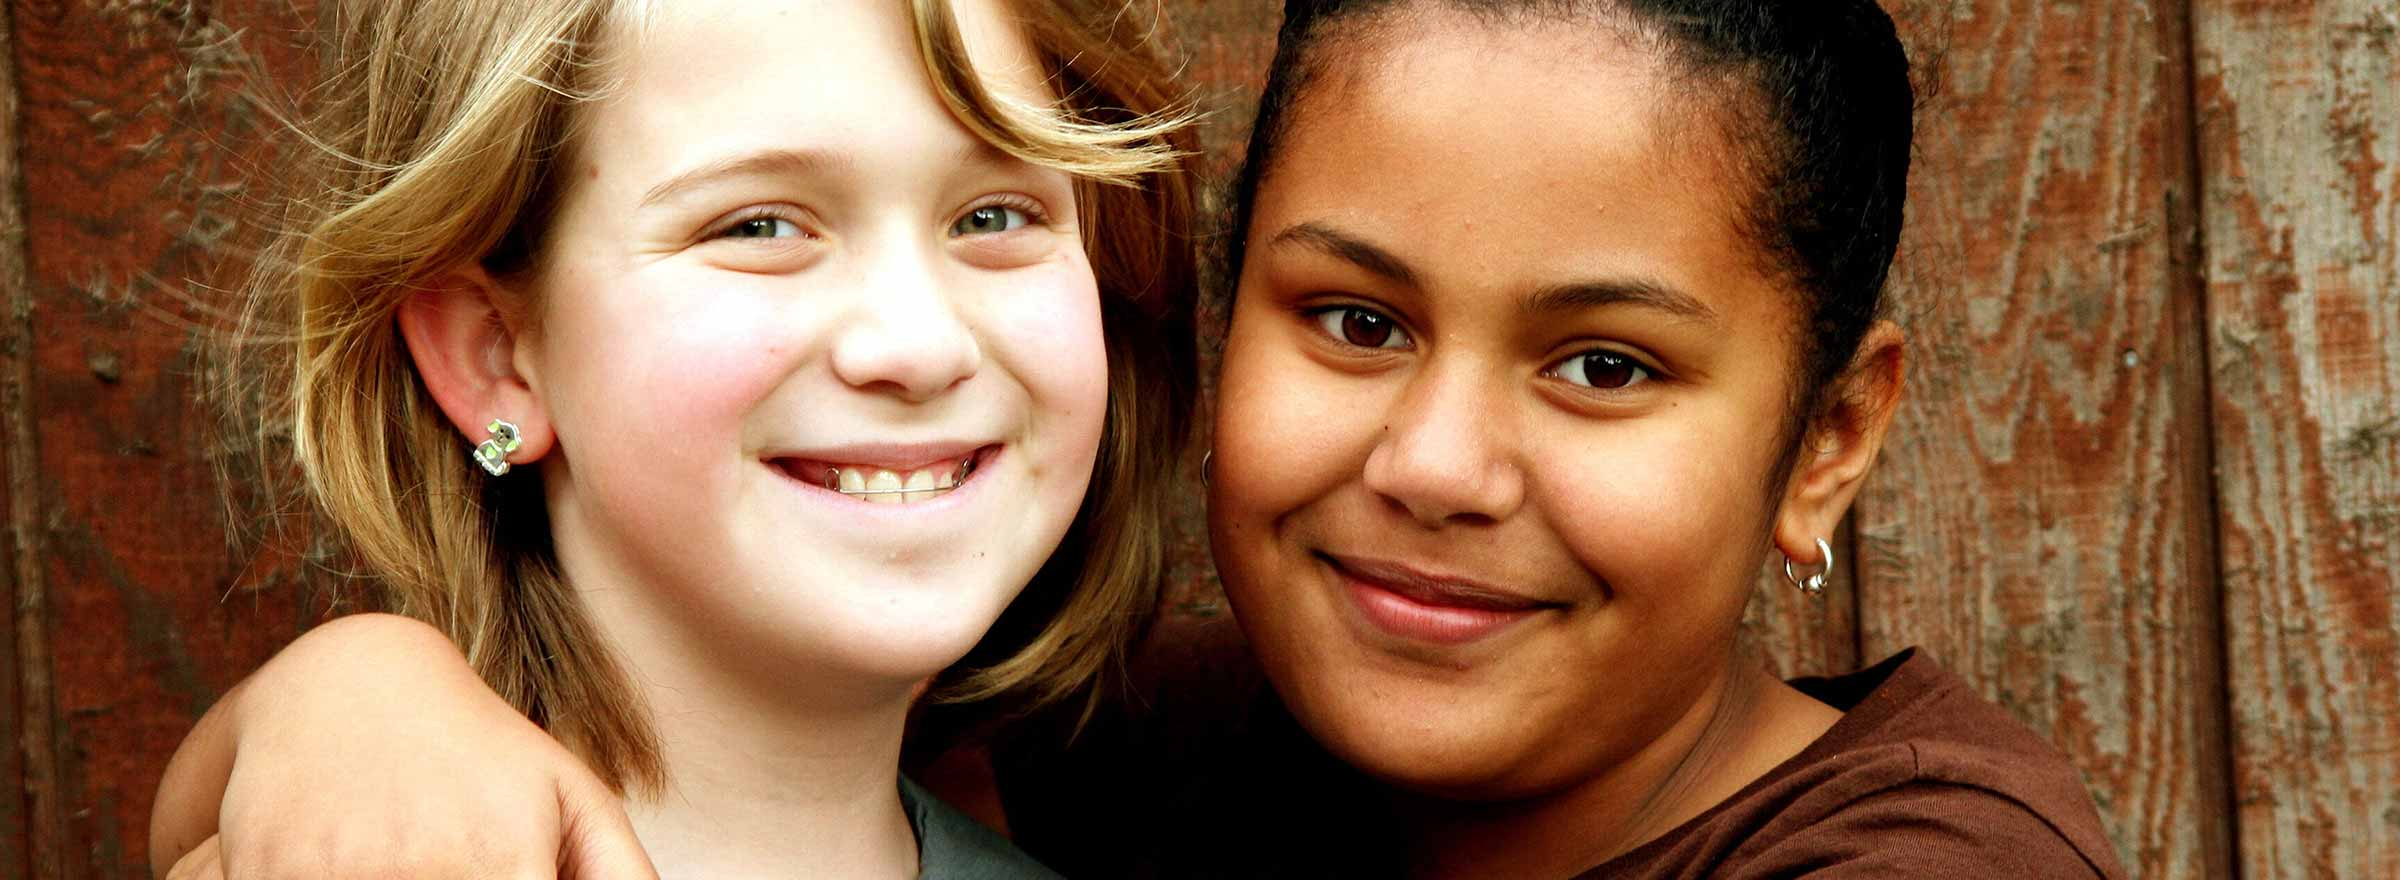 head shot of two girls together